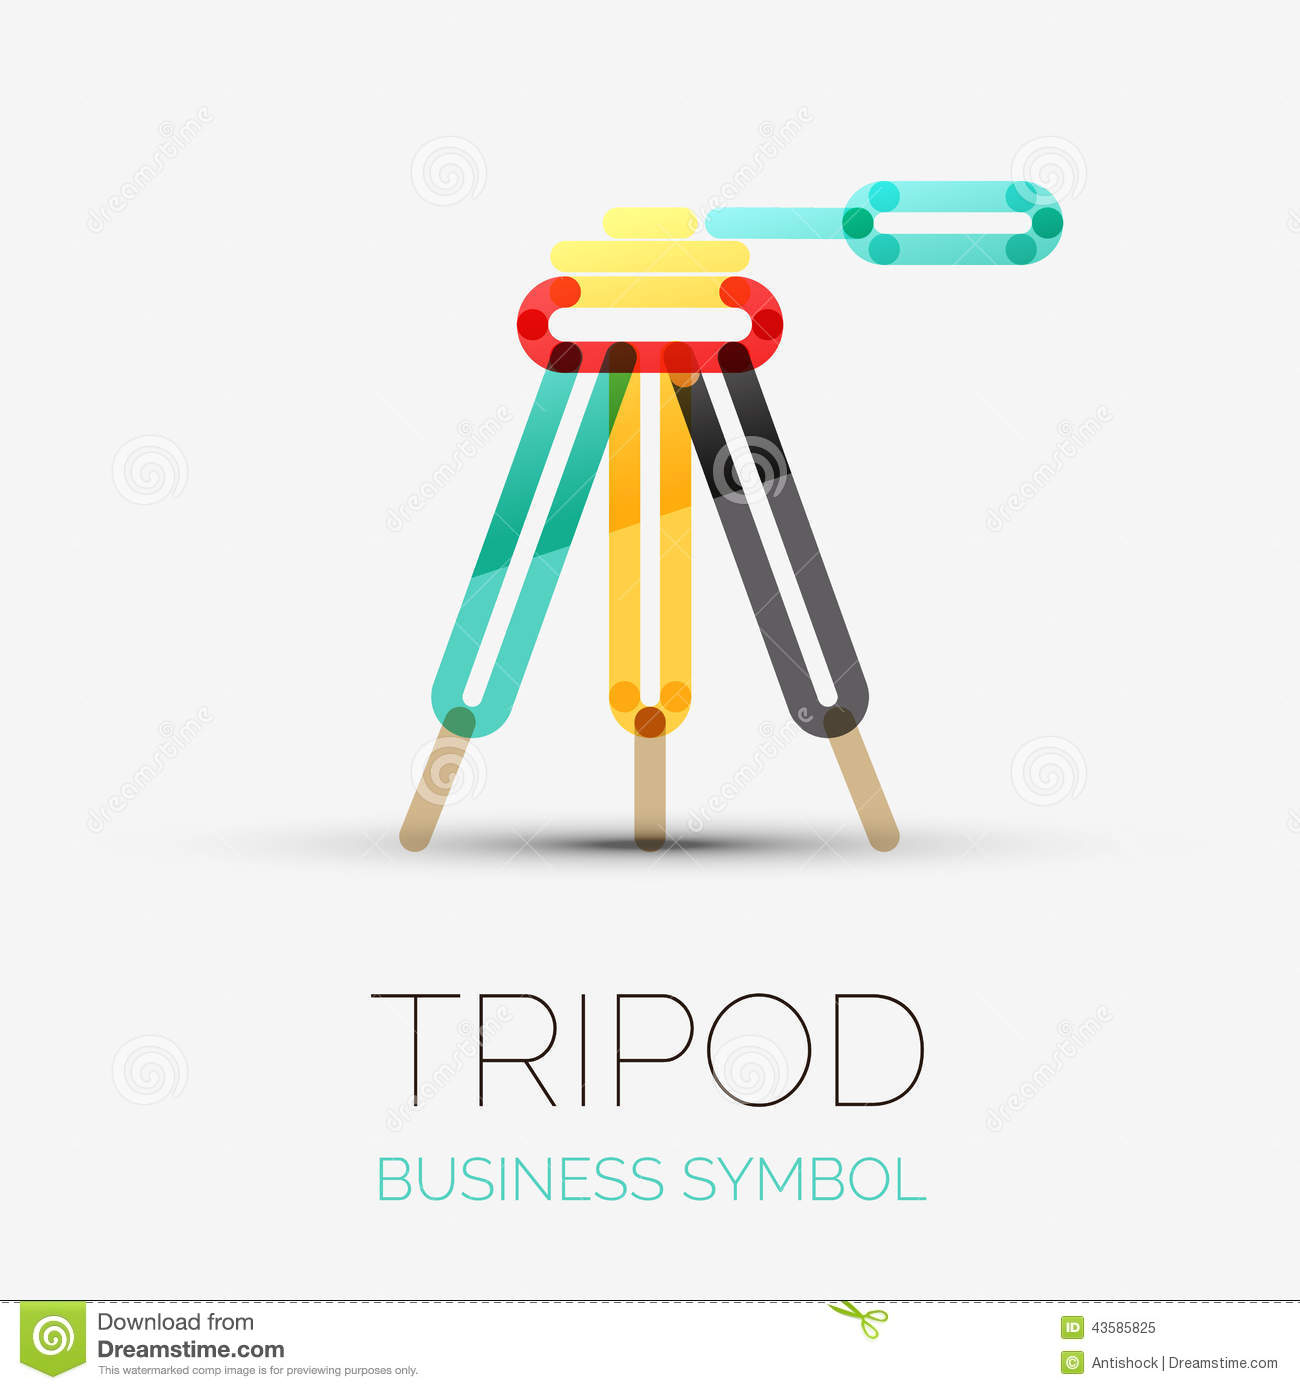 tripod icon company logo business symbol concept stock